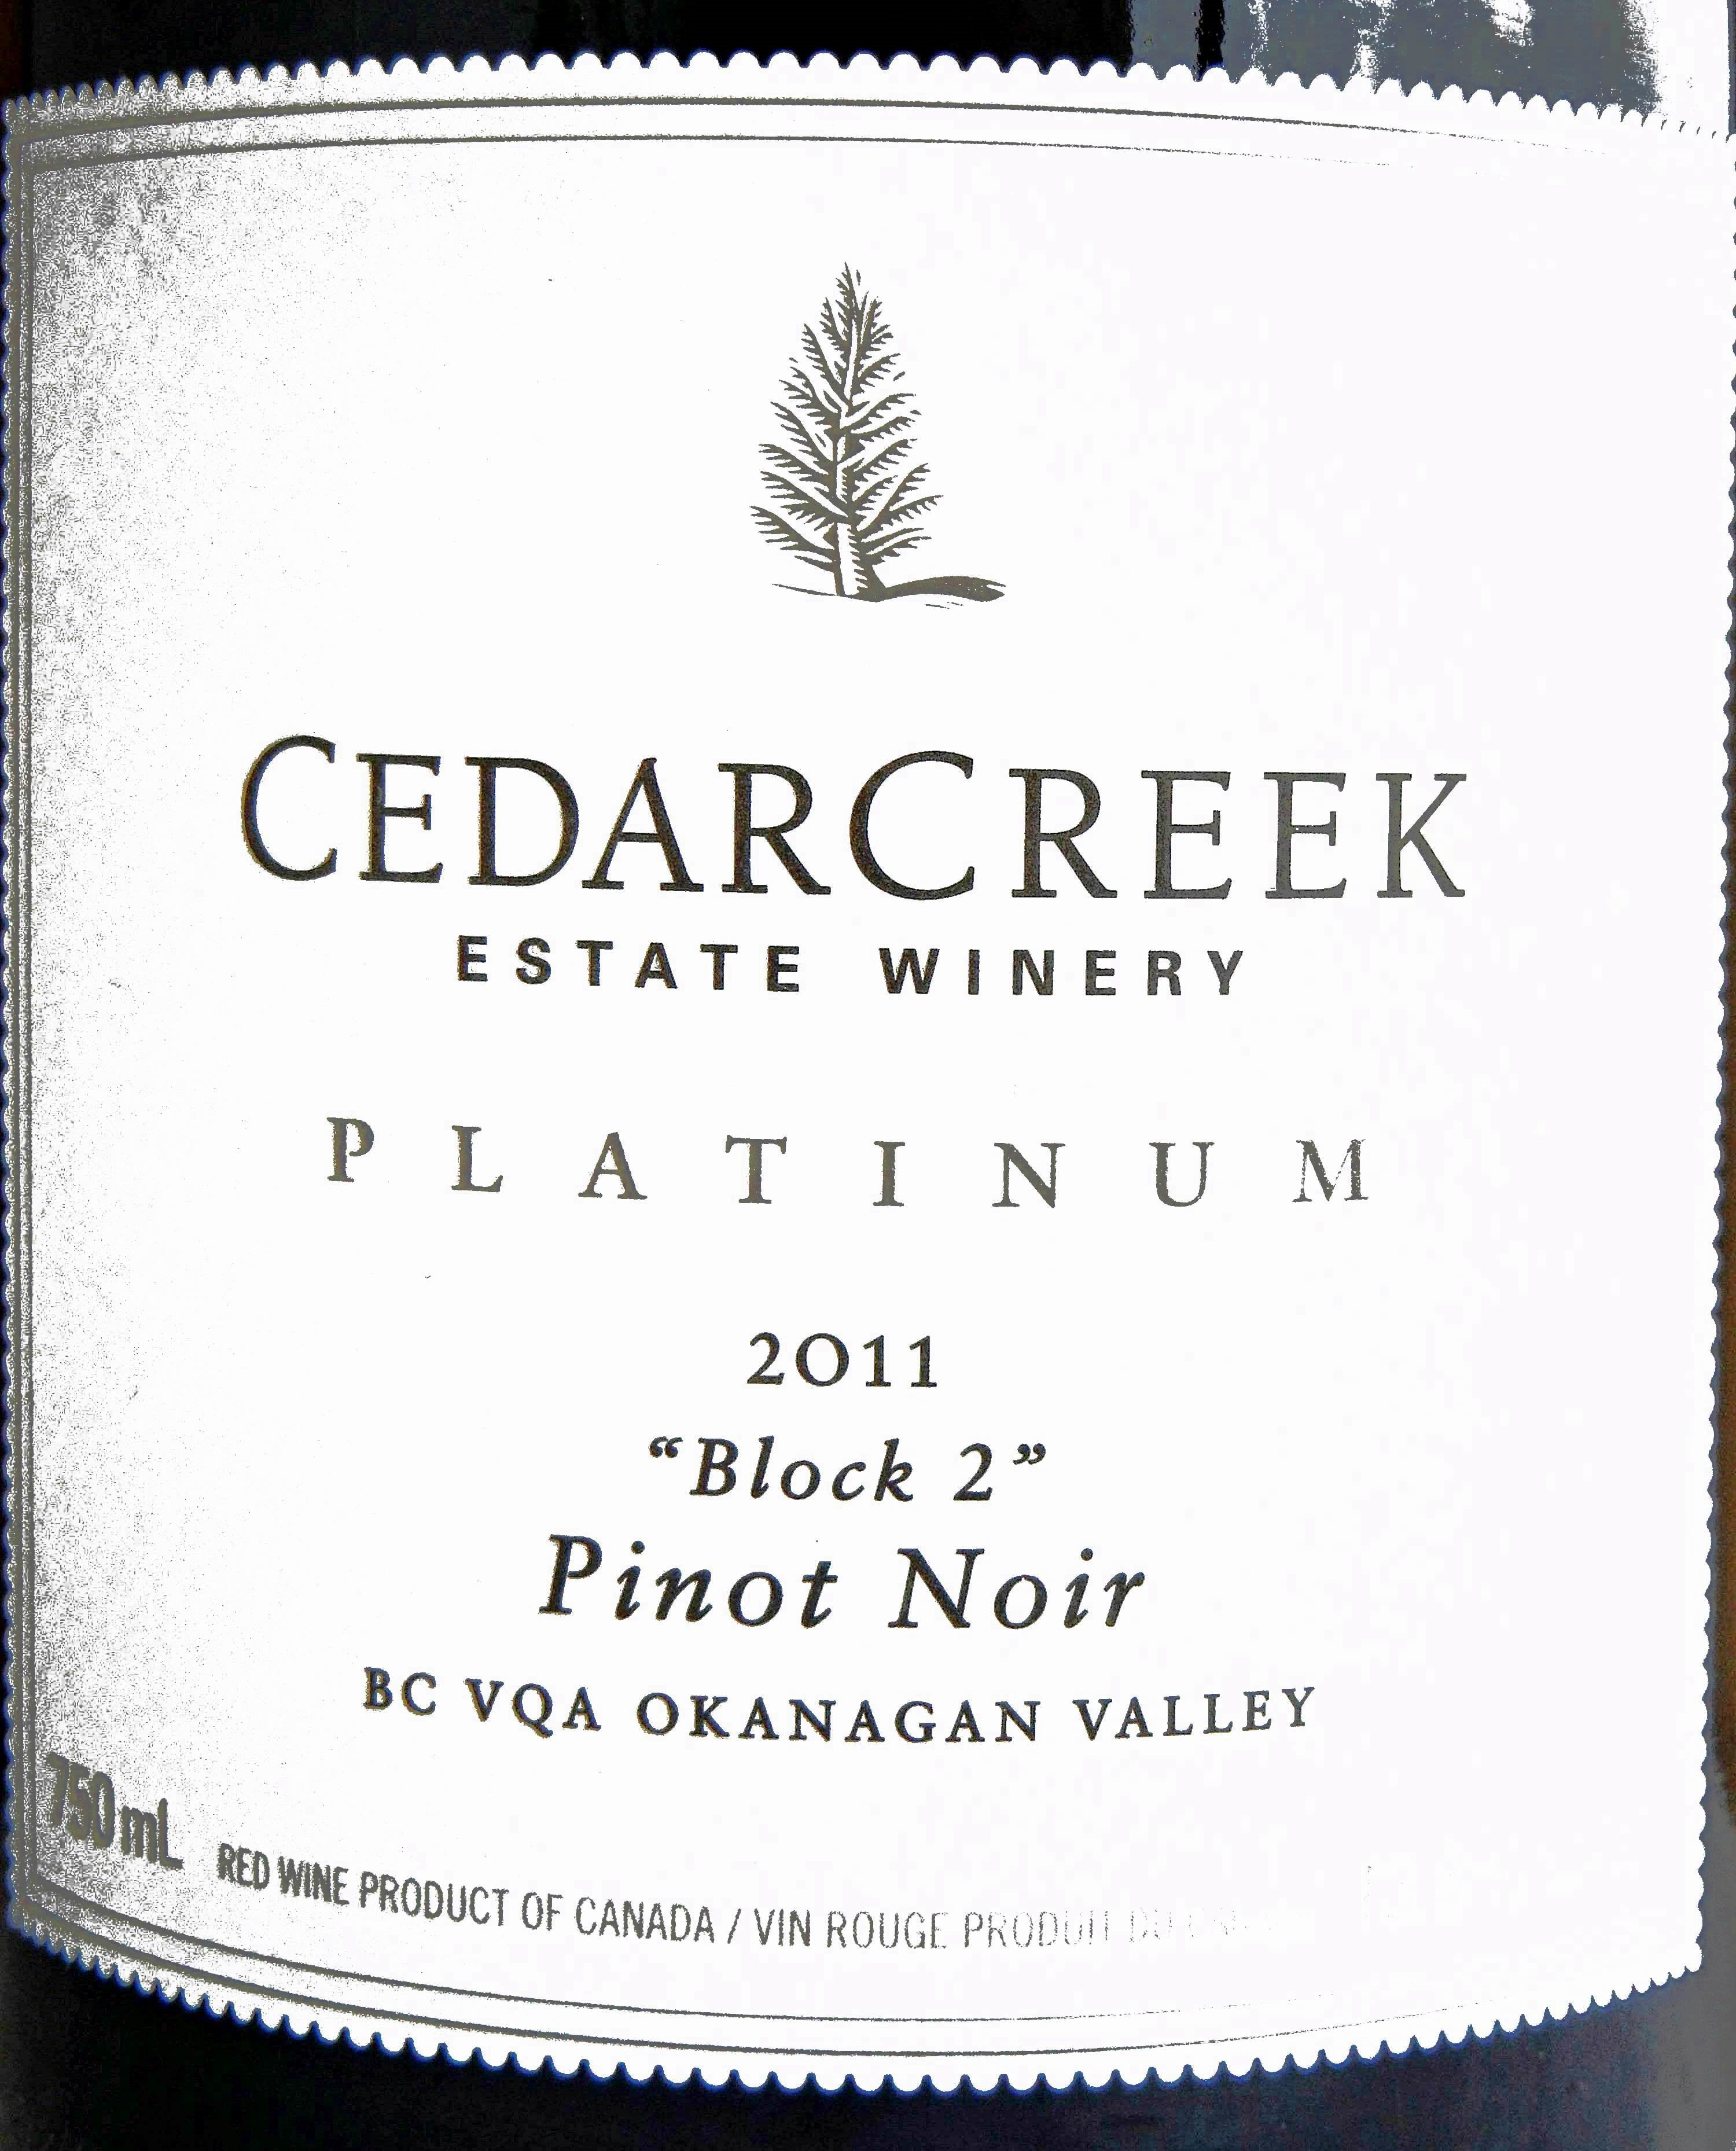 Cedar Creek Platinum Block 2 Pinot Noir 2011 Label - BC Pinot Noir Tasting Review 17